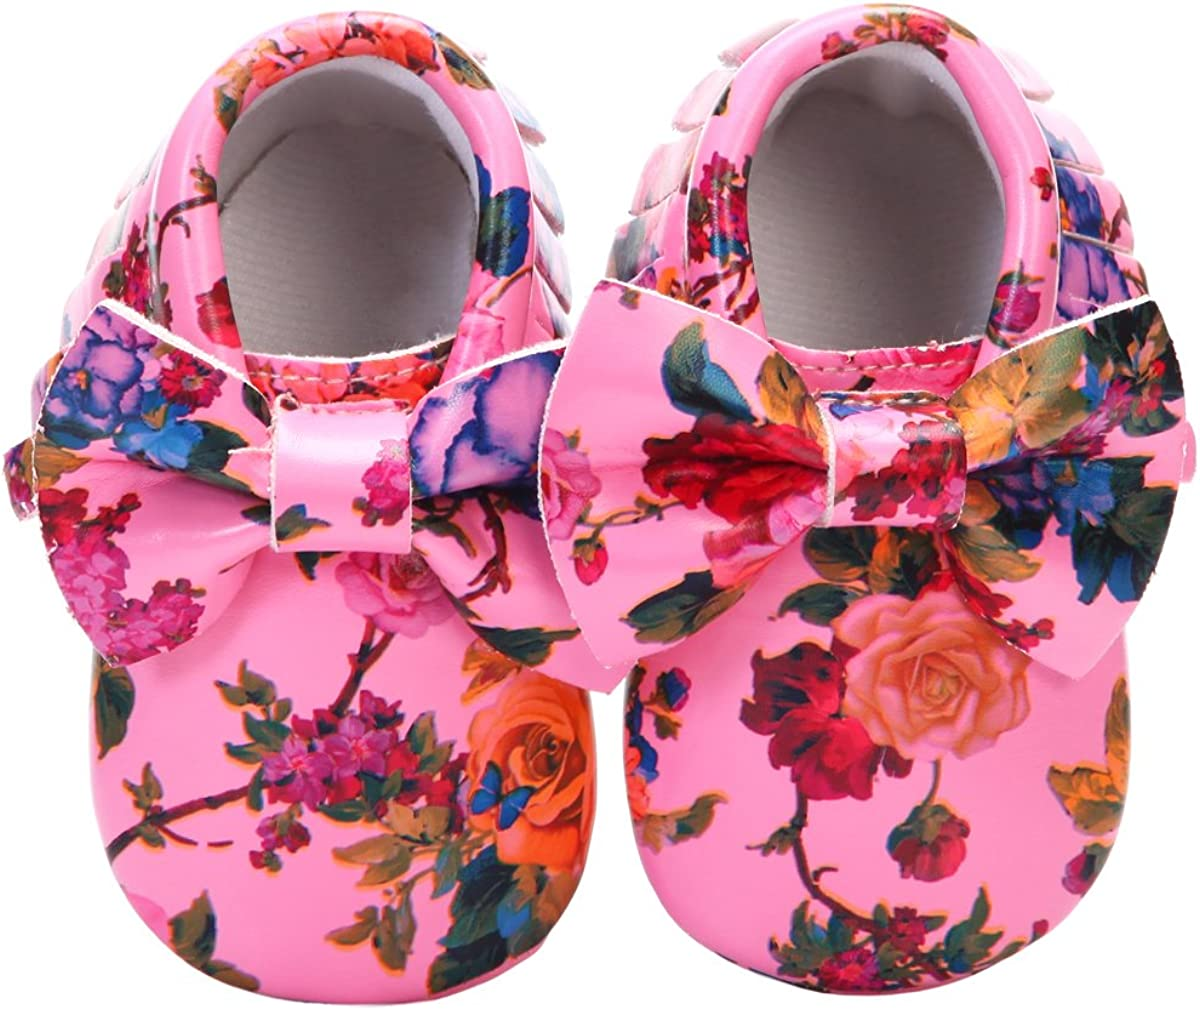 HONGTEYA Baby Moccasins with Rubber Sole Flower Print PU Leather Tassel Bow Girls Ballet Dress Shoes for Toddler